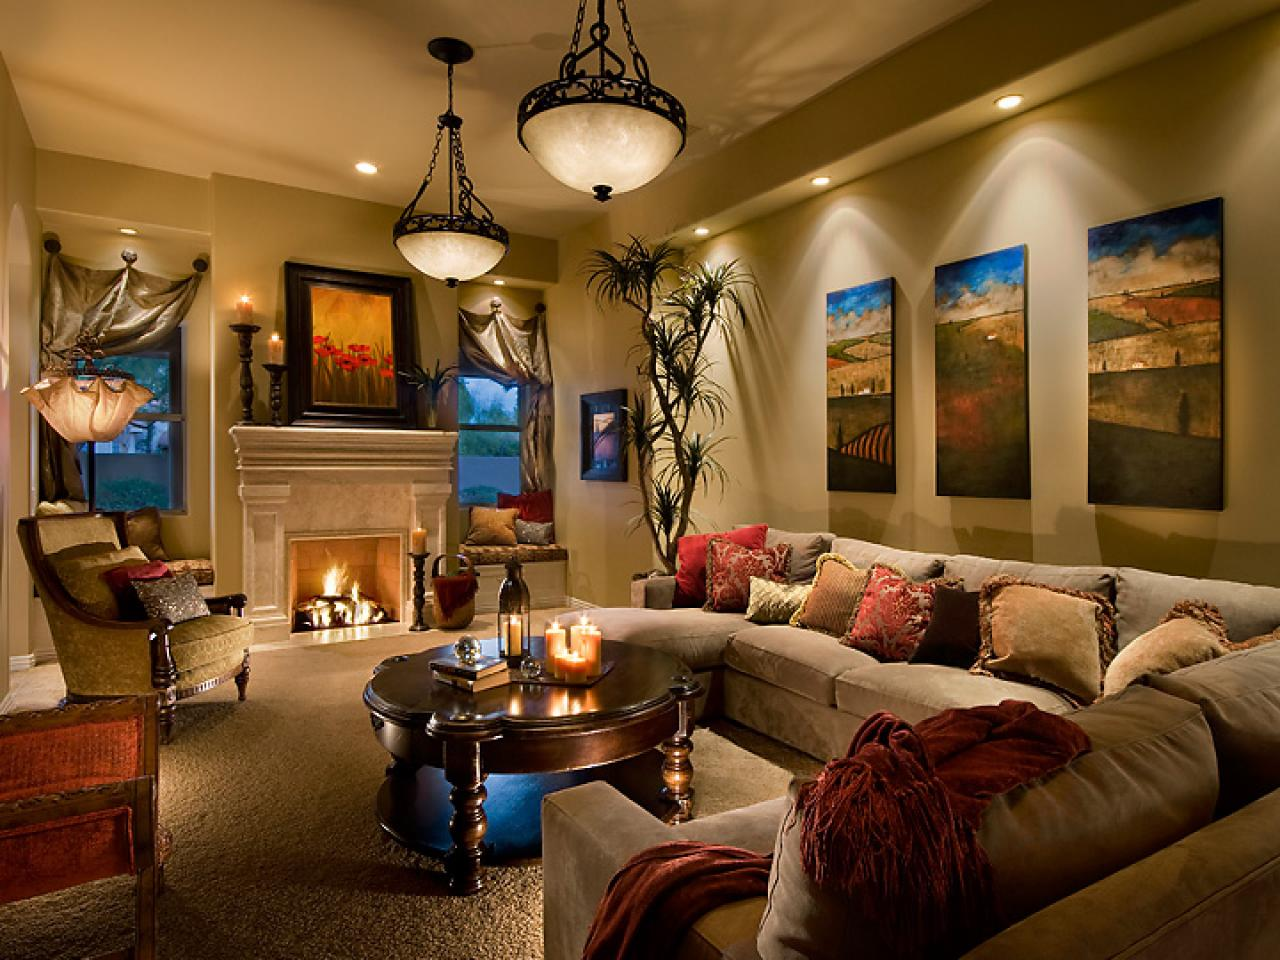 Living room lighting tips hgtv for Living room remodel ideas